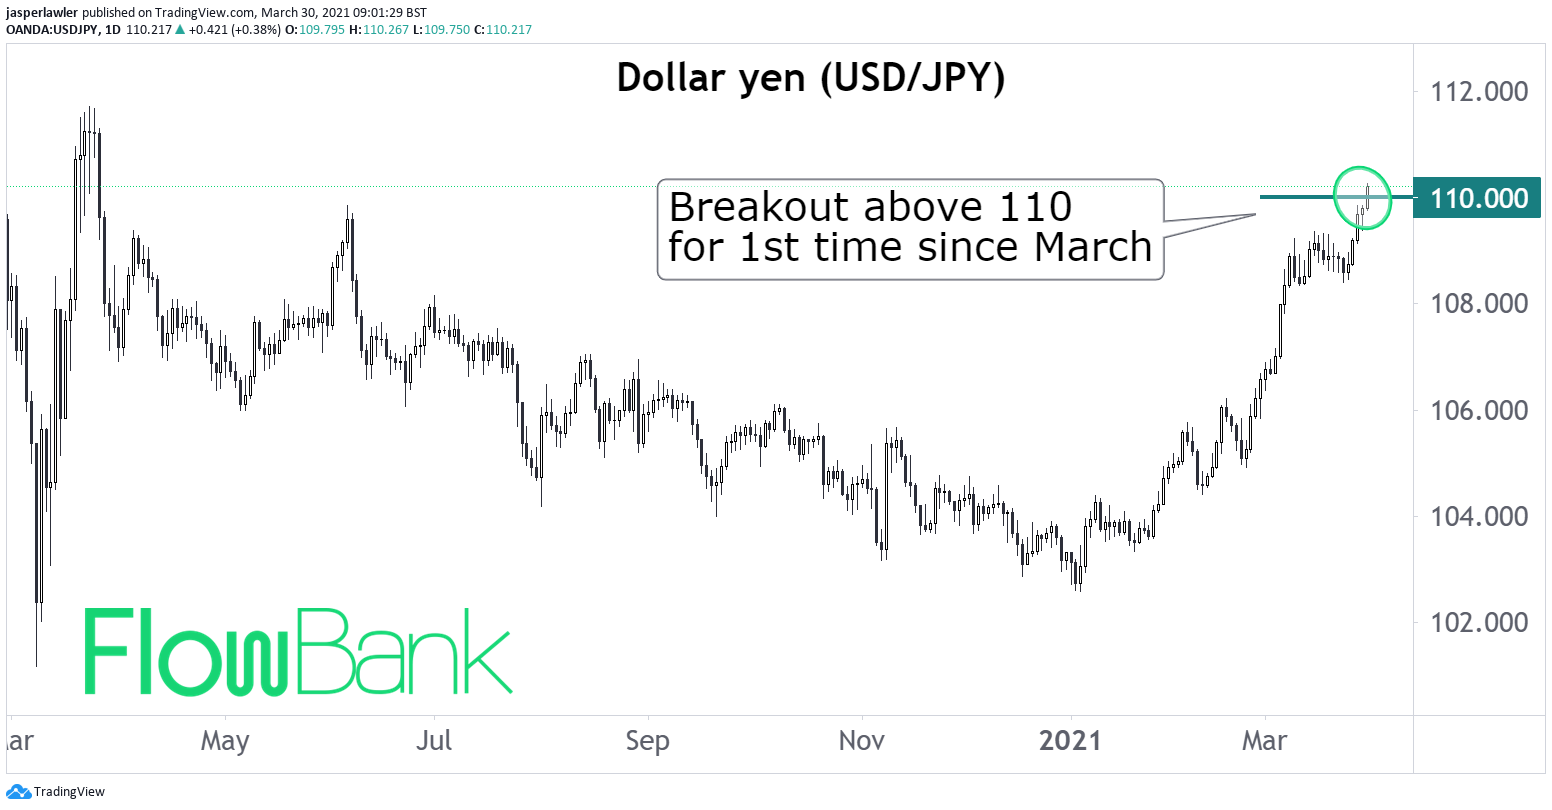 USD/JPY breaks out above 110 level for 1st time in a year